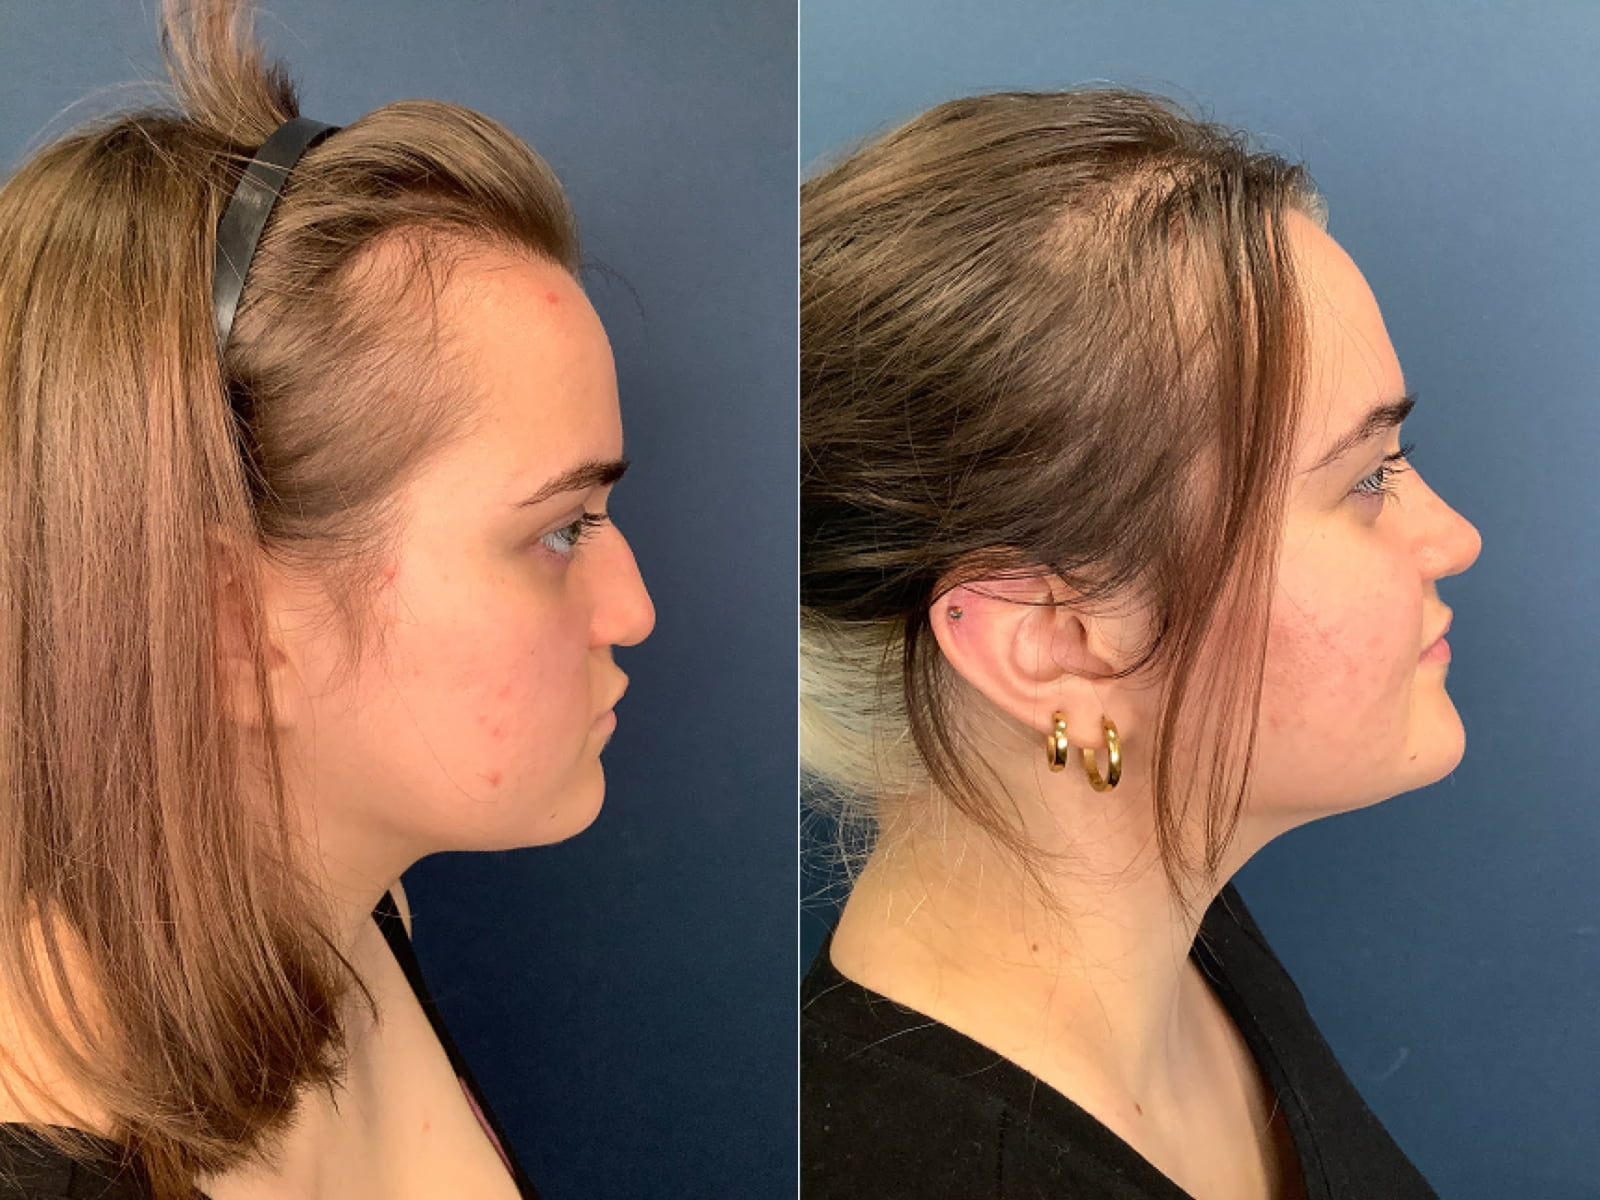 CN Rhinoplasty Before & After